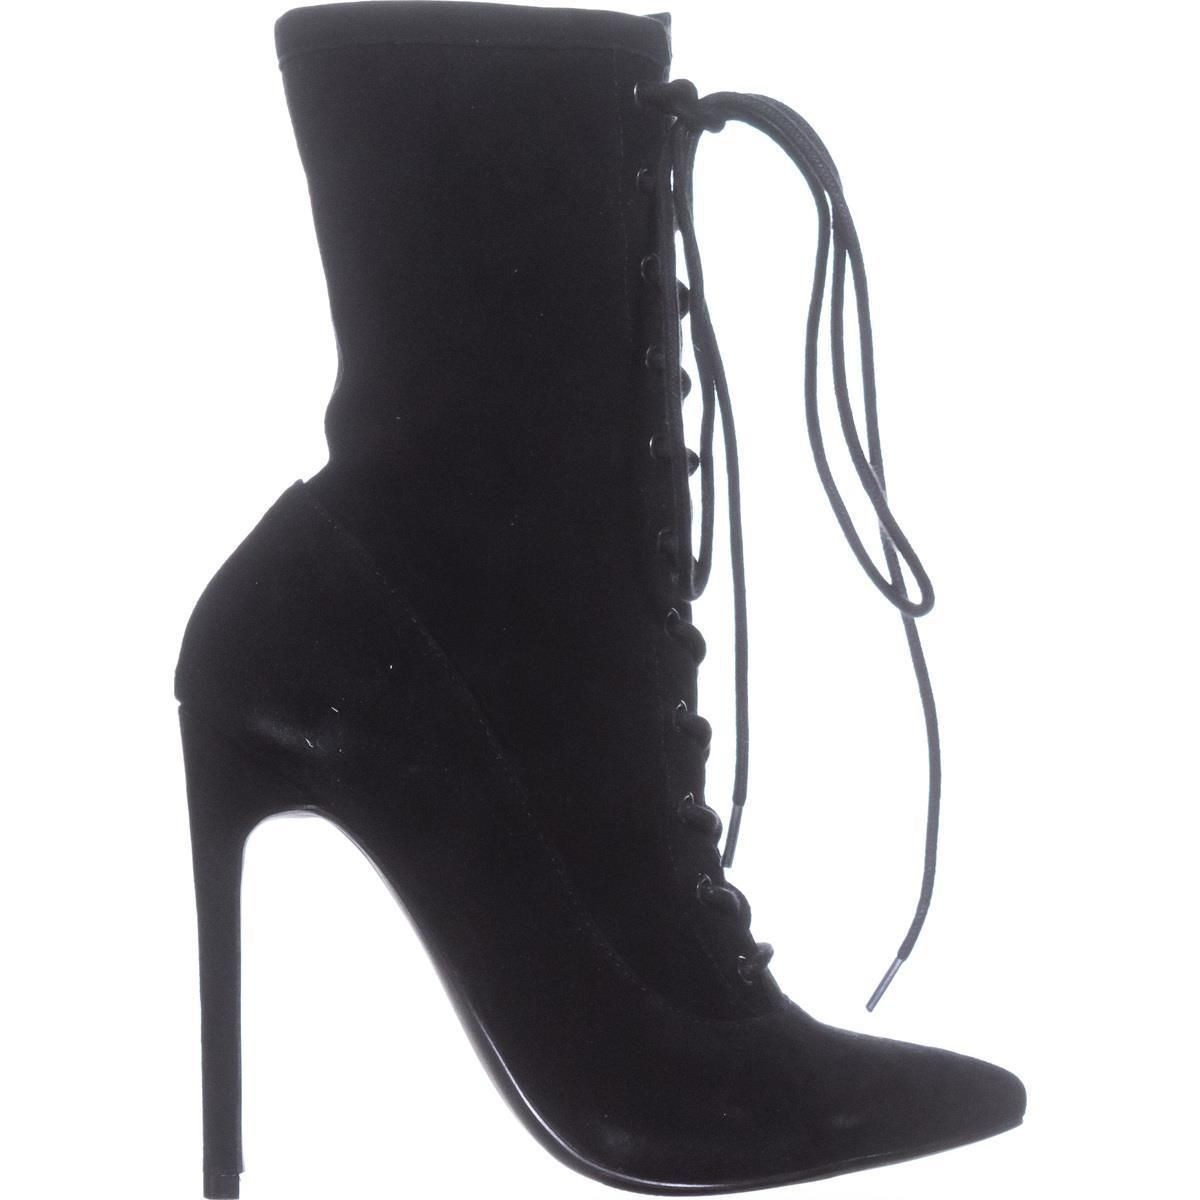 b0b13048c61 Steve Madden Satisfied Lace Up Ankle Boots Black Suede 7.5 US #boots ...